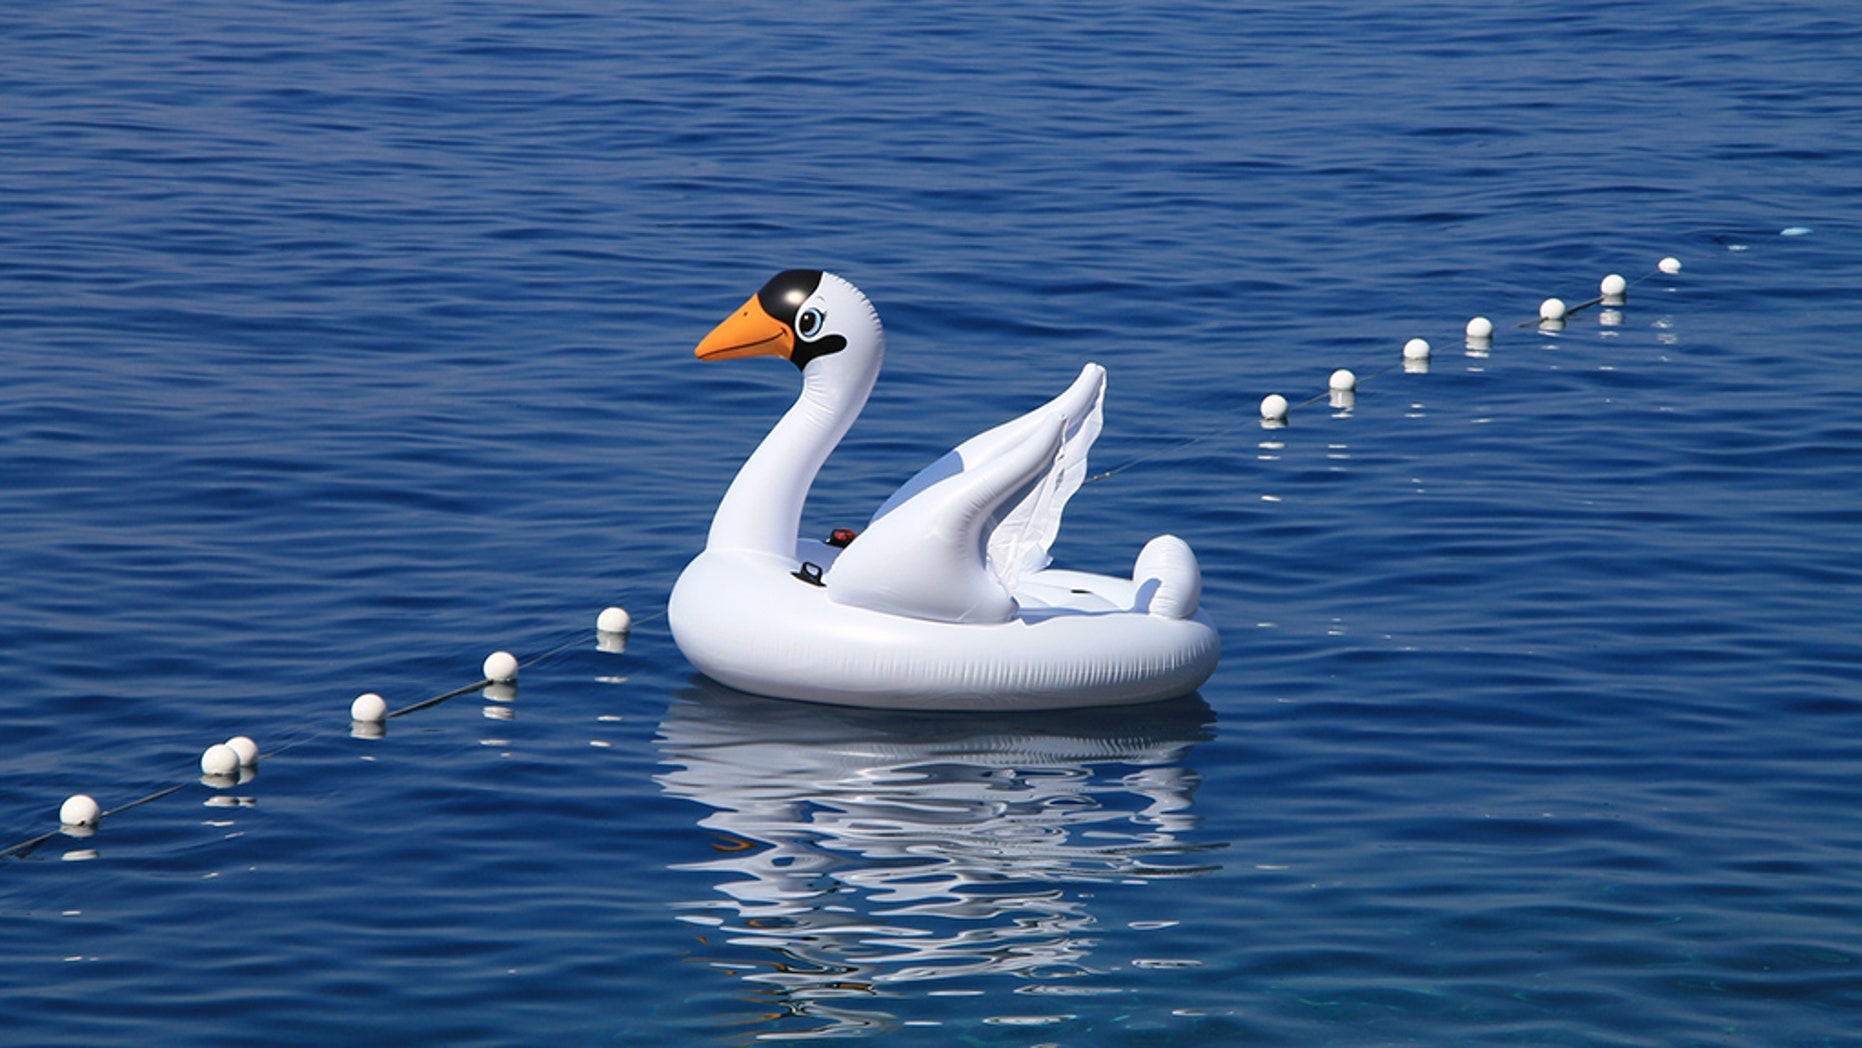 d2df7e1f388c Florida woman and son drift miles away from shore on inflatable swan ...